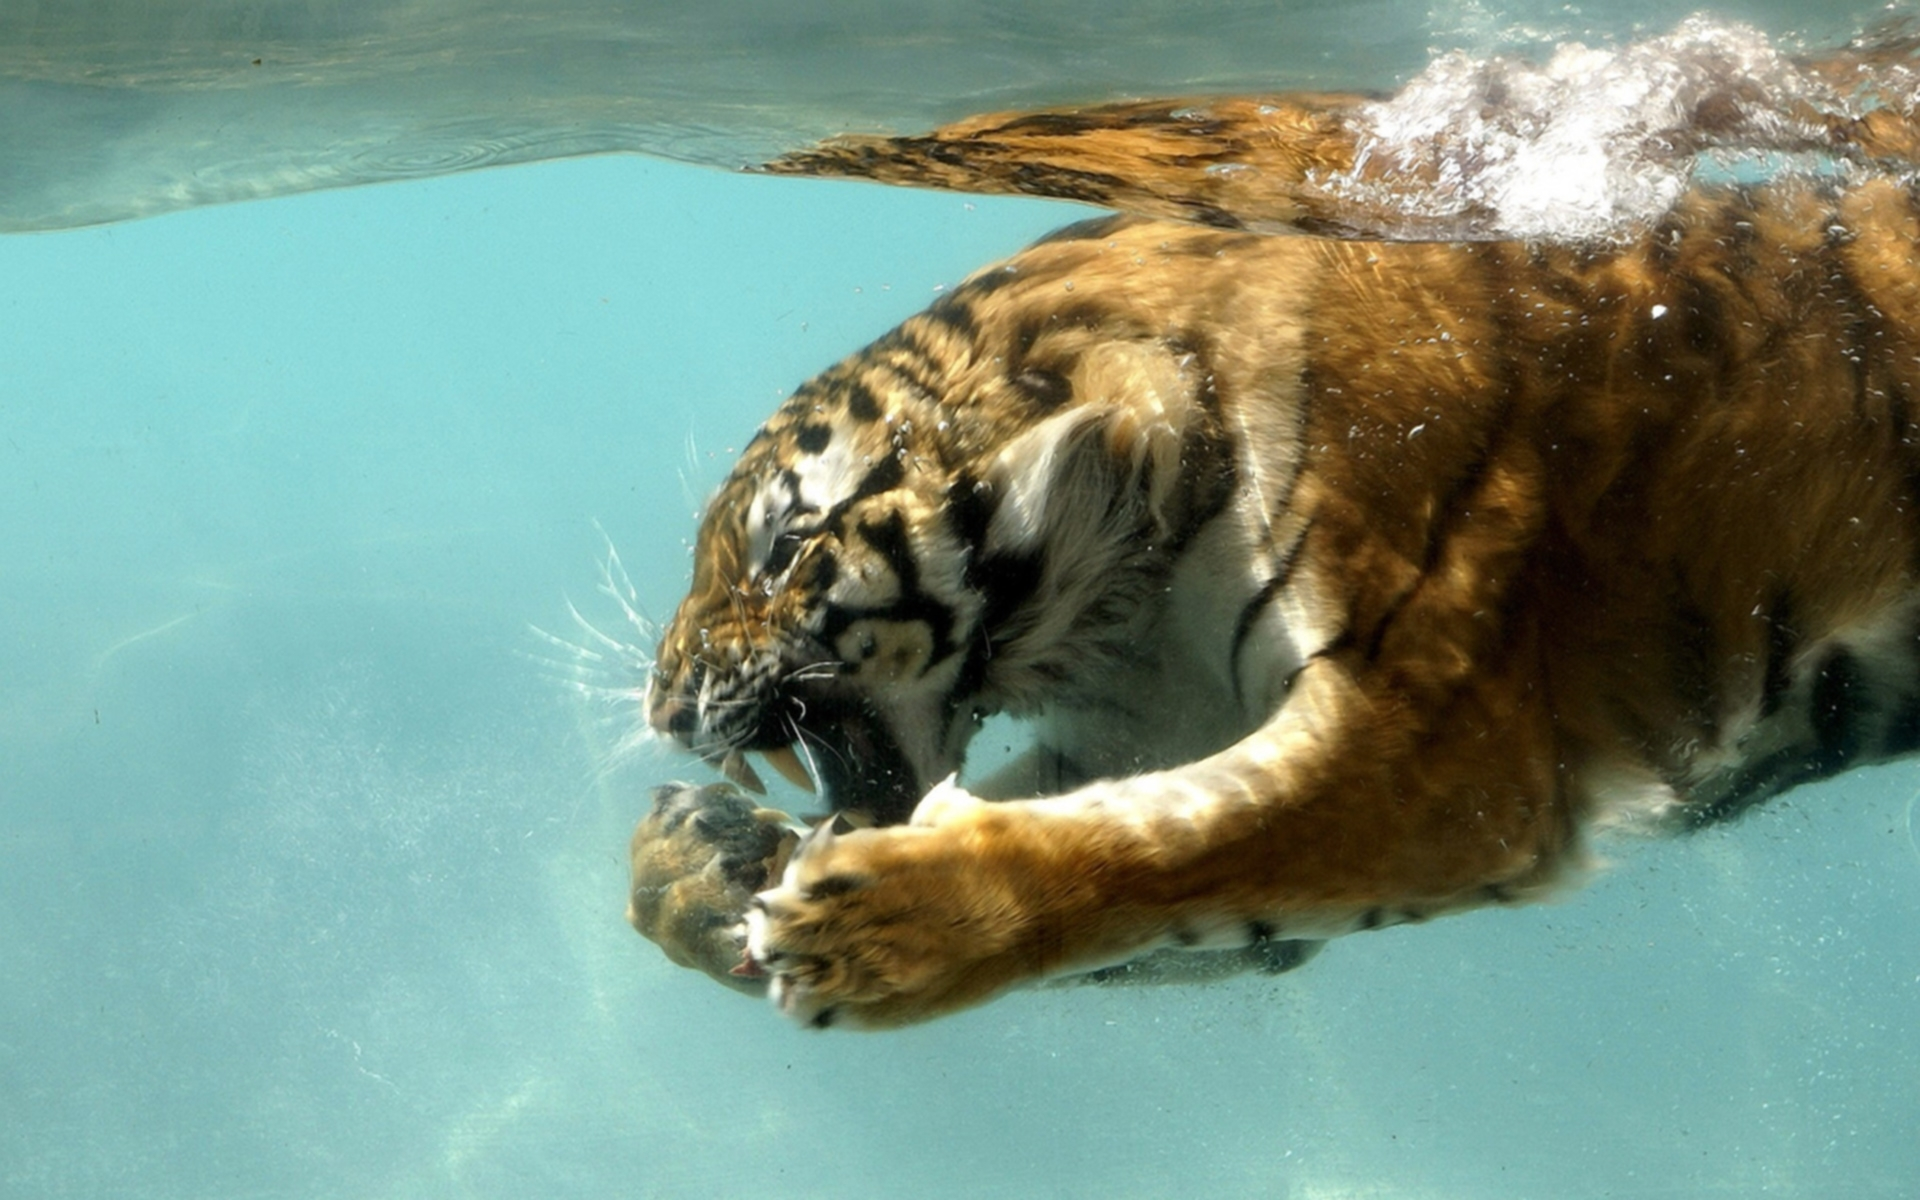 47462 download wallpaper Animals, Tigers screensavers and pictures for free